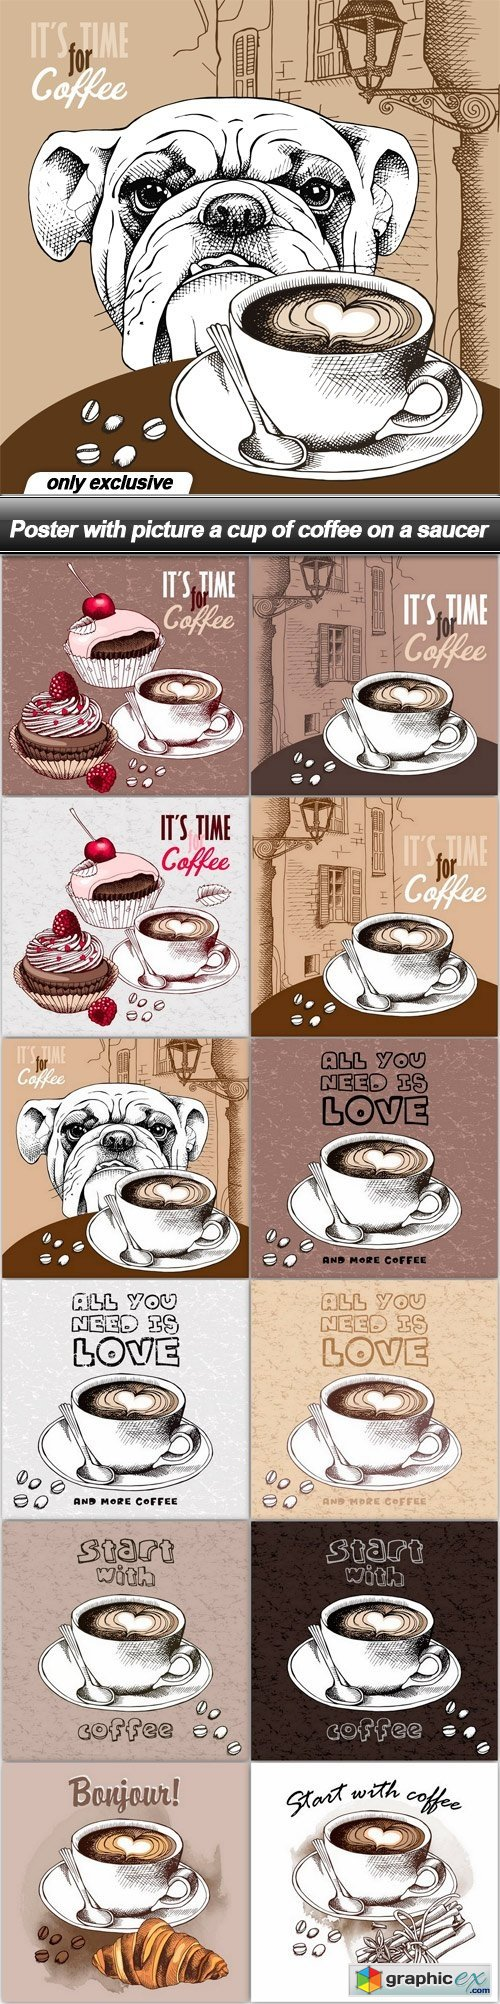 Poster with picture a cup of coffee on a saucer - 12 EPS